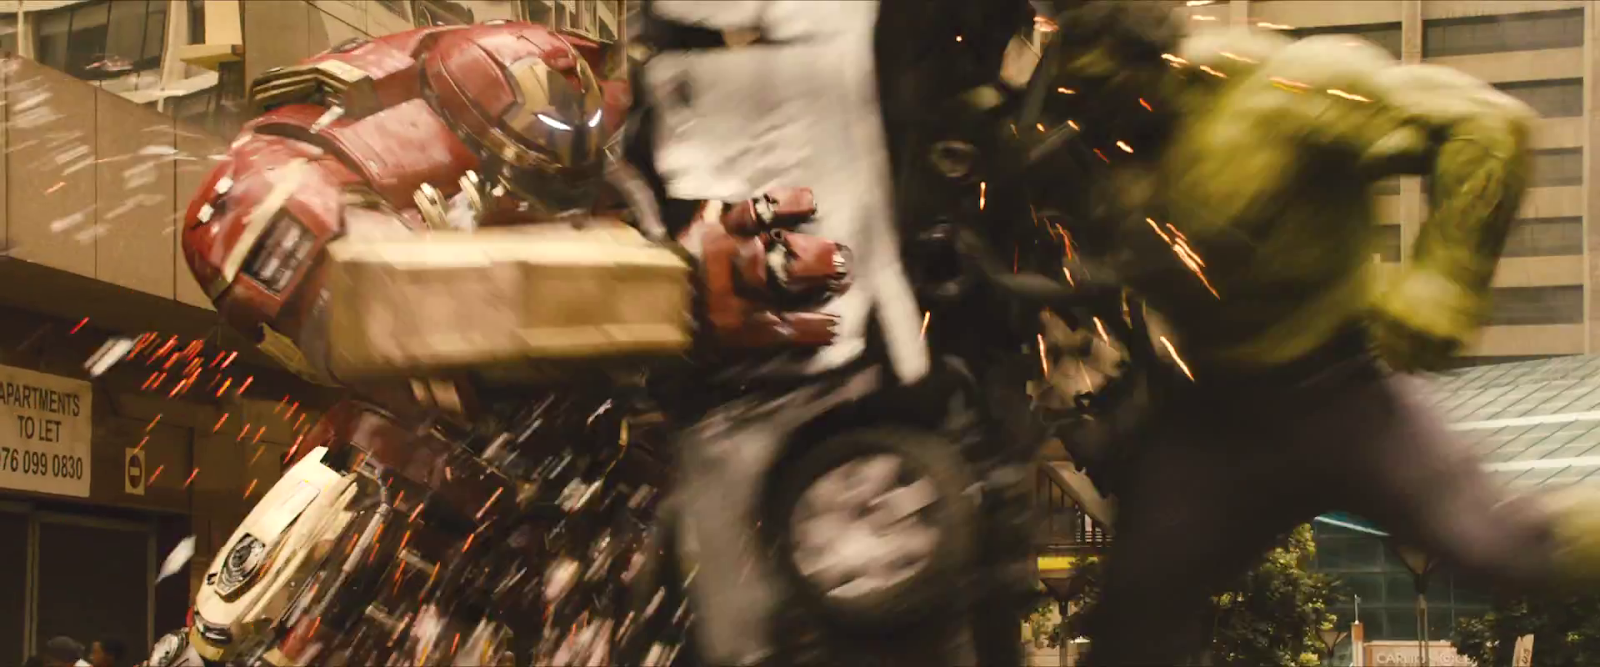 avengers-age-of-ultron-trailer-screengrab-27-hulk-hulkbuster.png